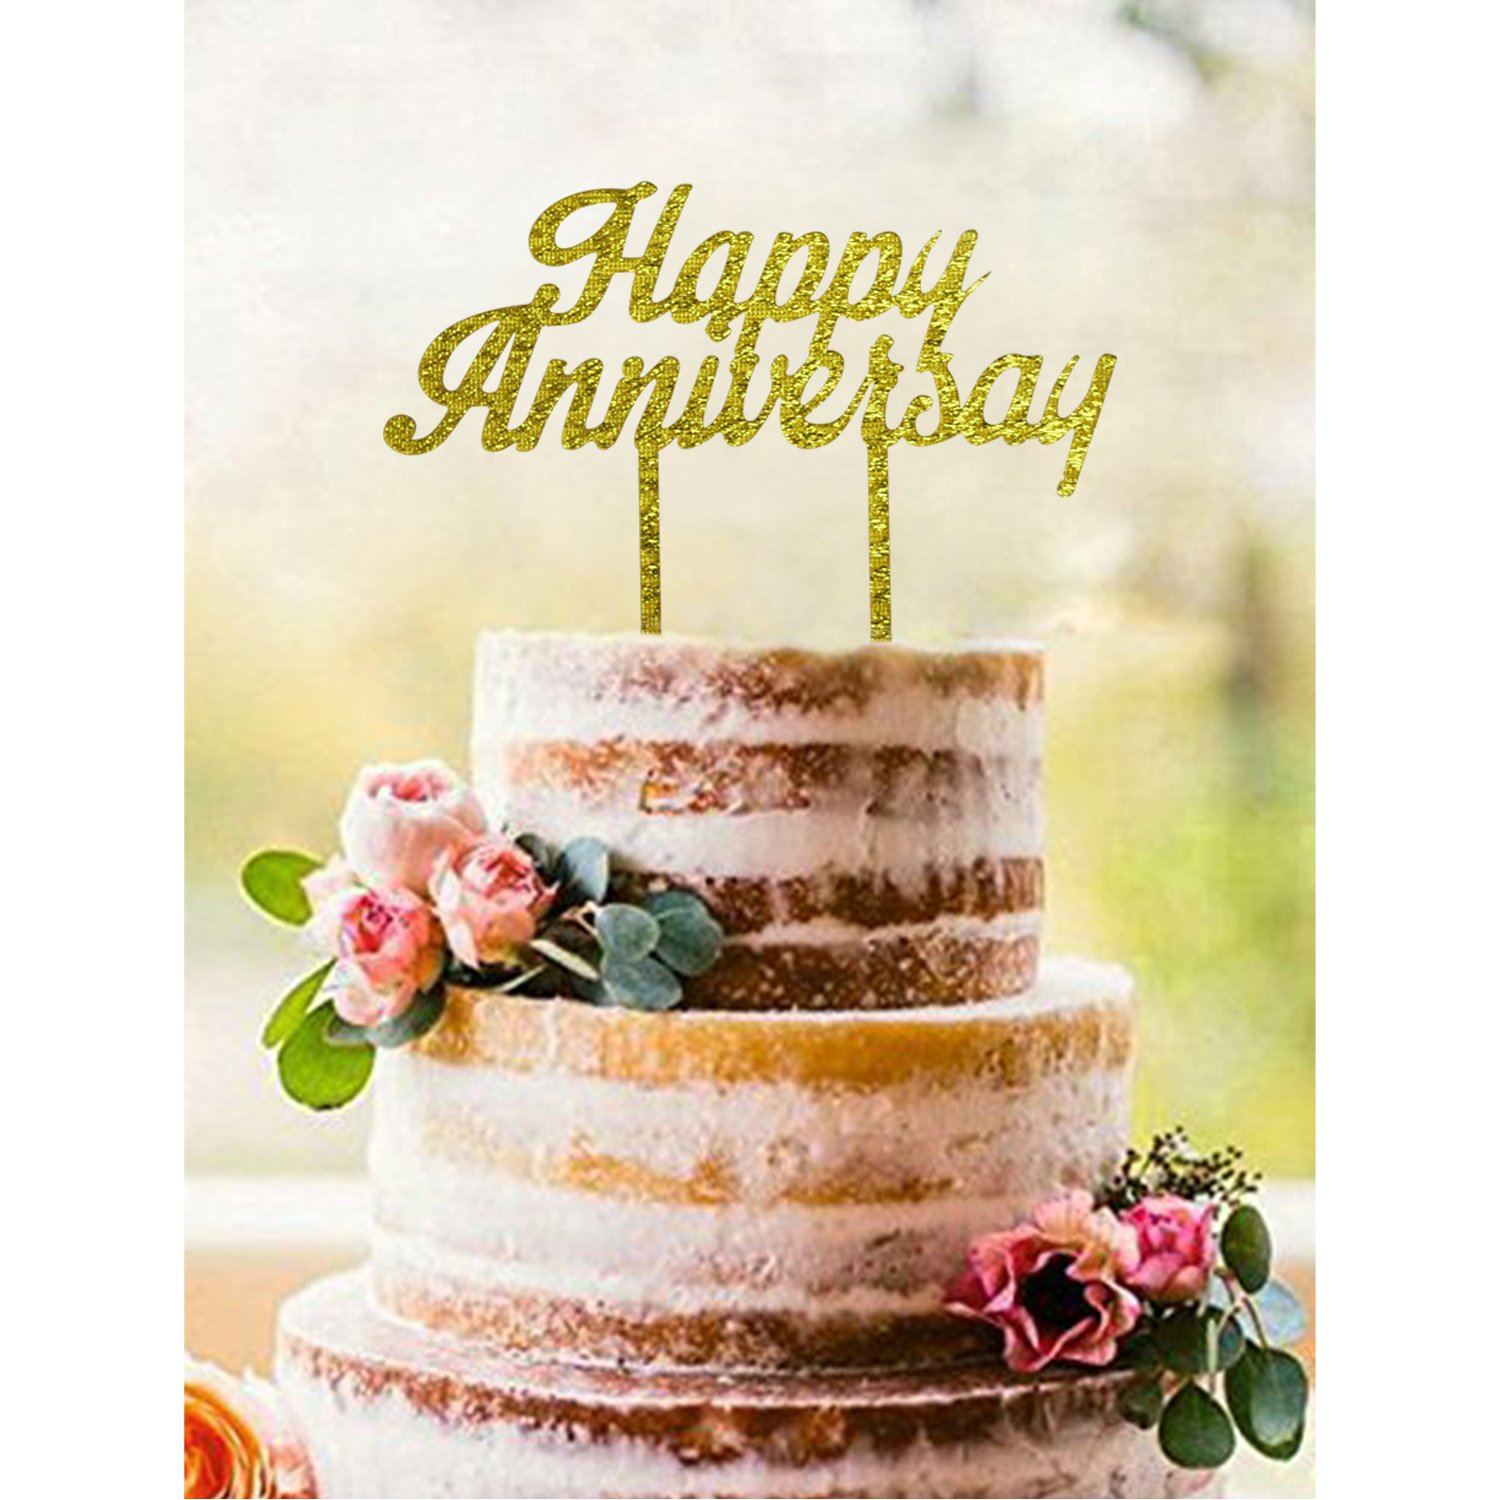 Amazon.com: Gold HAPPY ANNIVERSARY Acrylic Cake Topper - Wedding ...